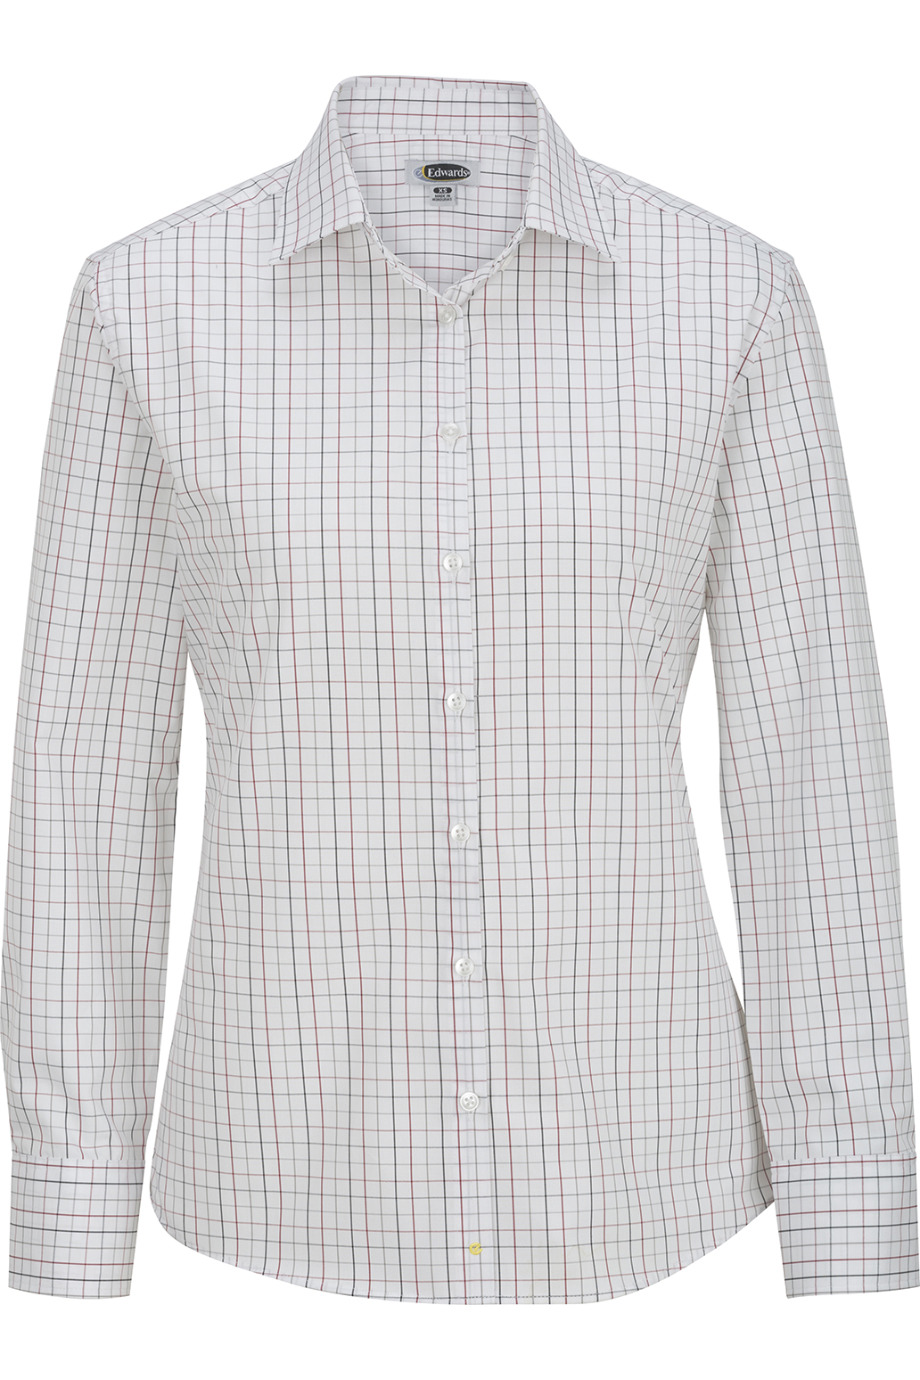 Edwards Garment 5973 - Ladies'Tattersall Poplin Shirt